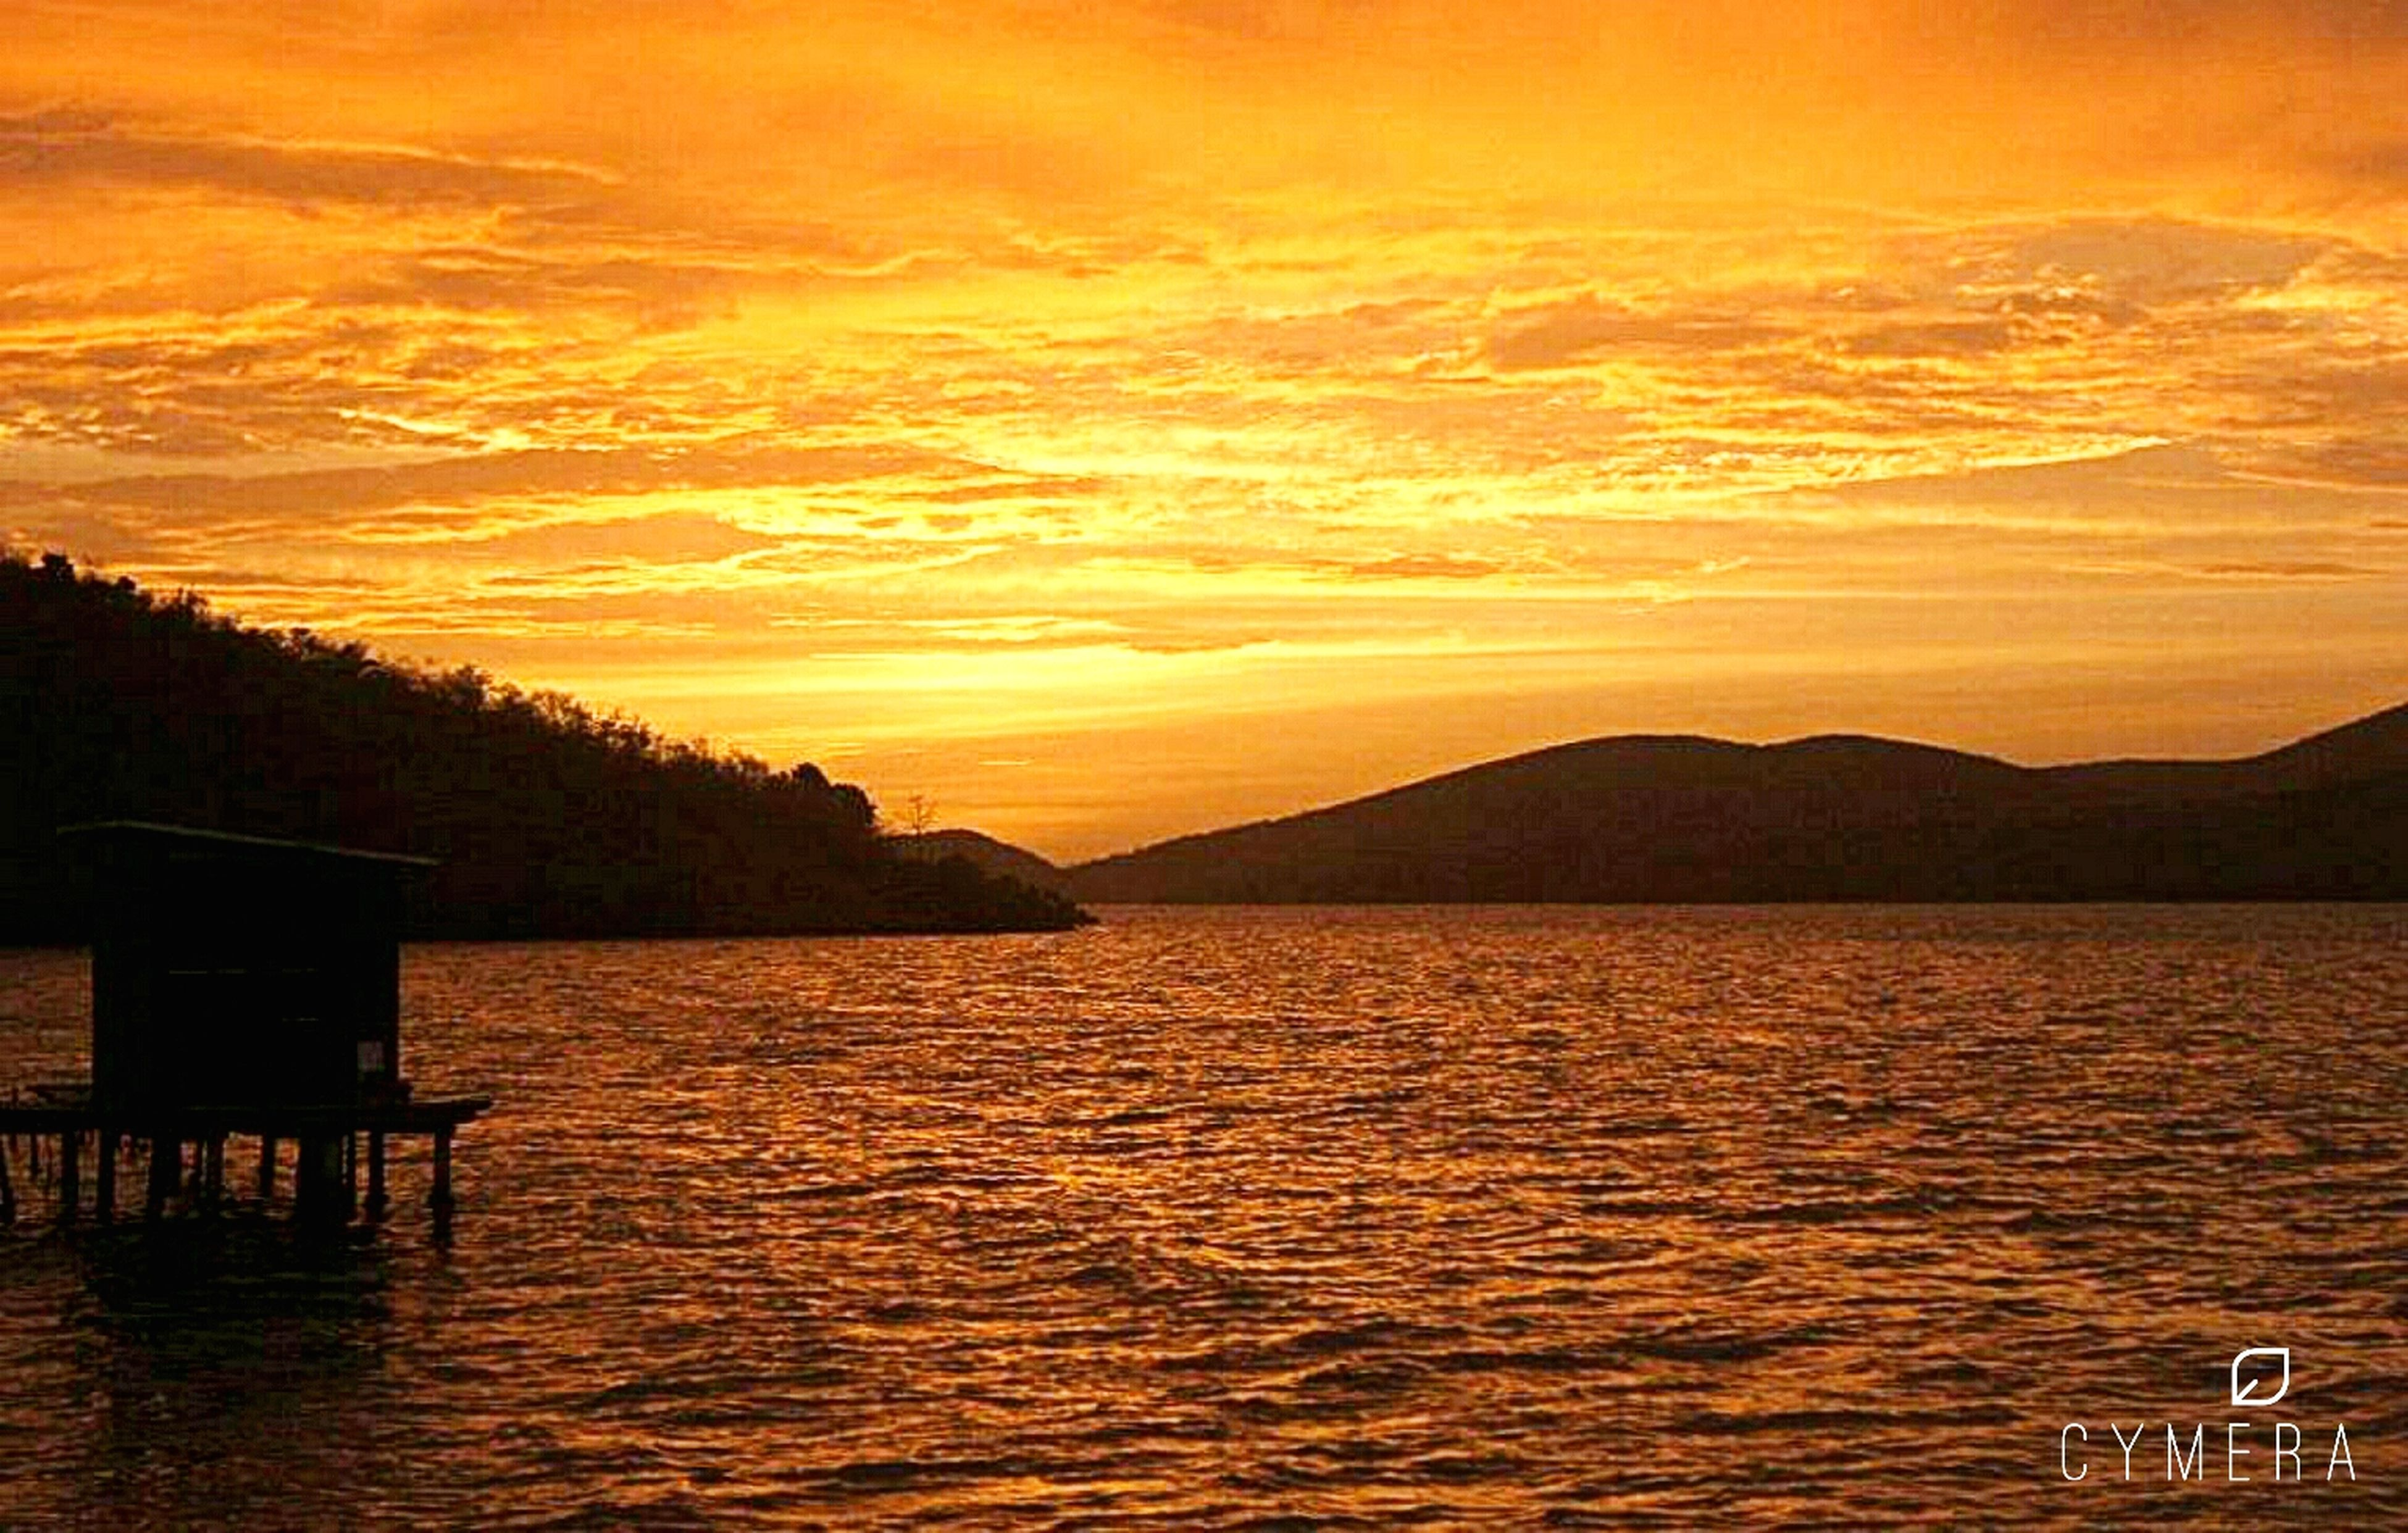 sunset, water, scenics, tranquil scene, tranquility, beauty in nature, silhouette, mountain, orange color, rippled, idyllic, nature, waterfront, sky, sea, lake, mountain range, non-urban scene, reflection, remote